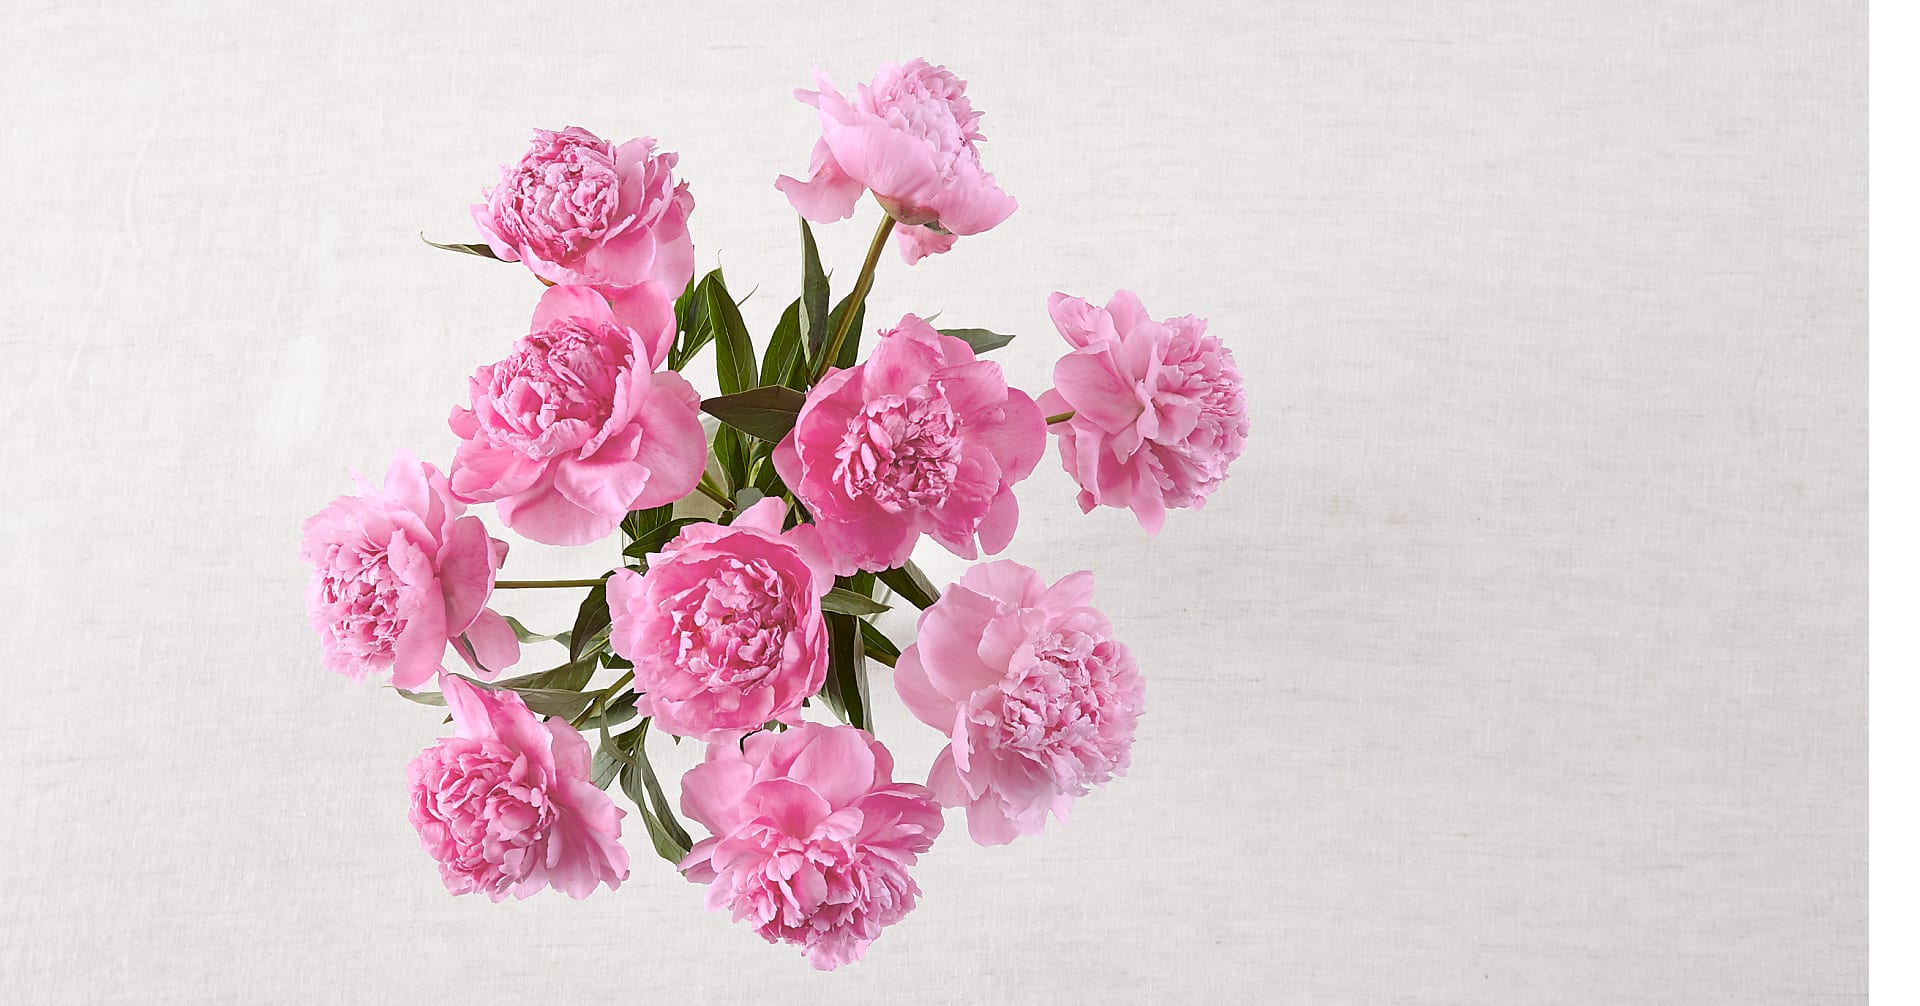 In Full Bloom Peony Bouquet - 10 Stems - No Vase - Image 2 Of 2